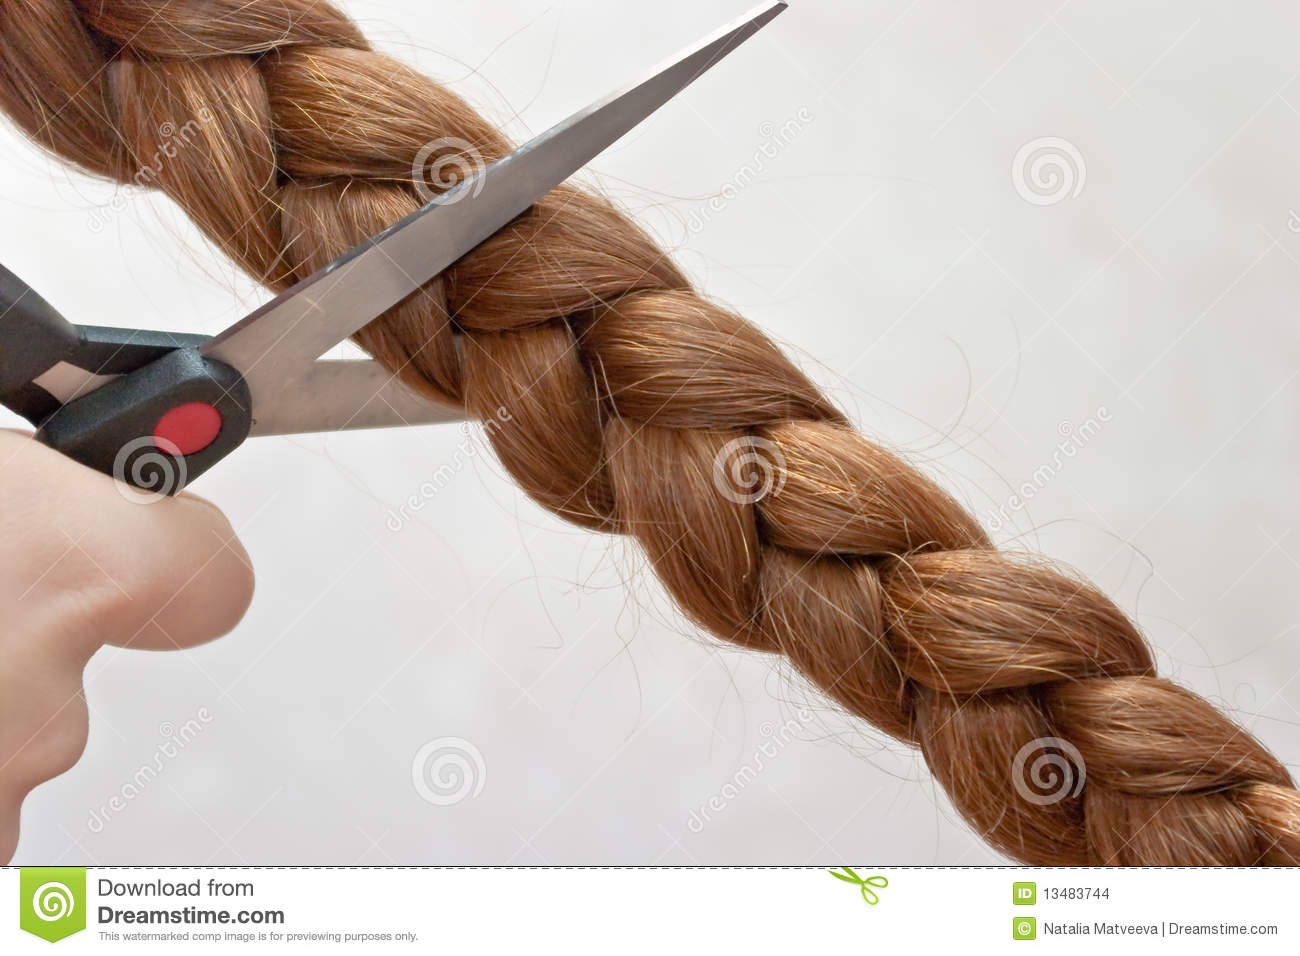 how to hold scissors while cutting hair